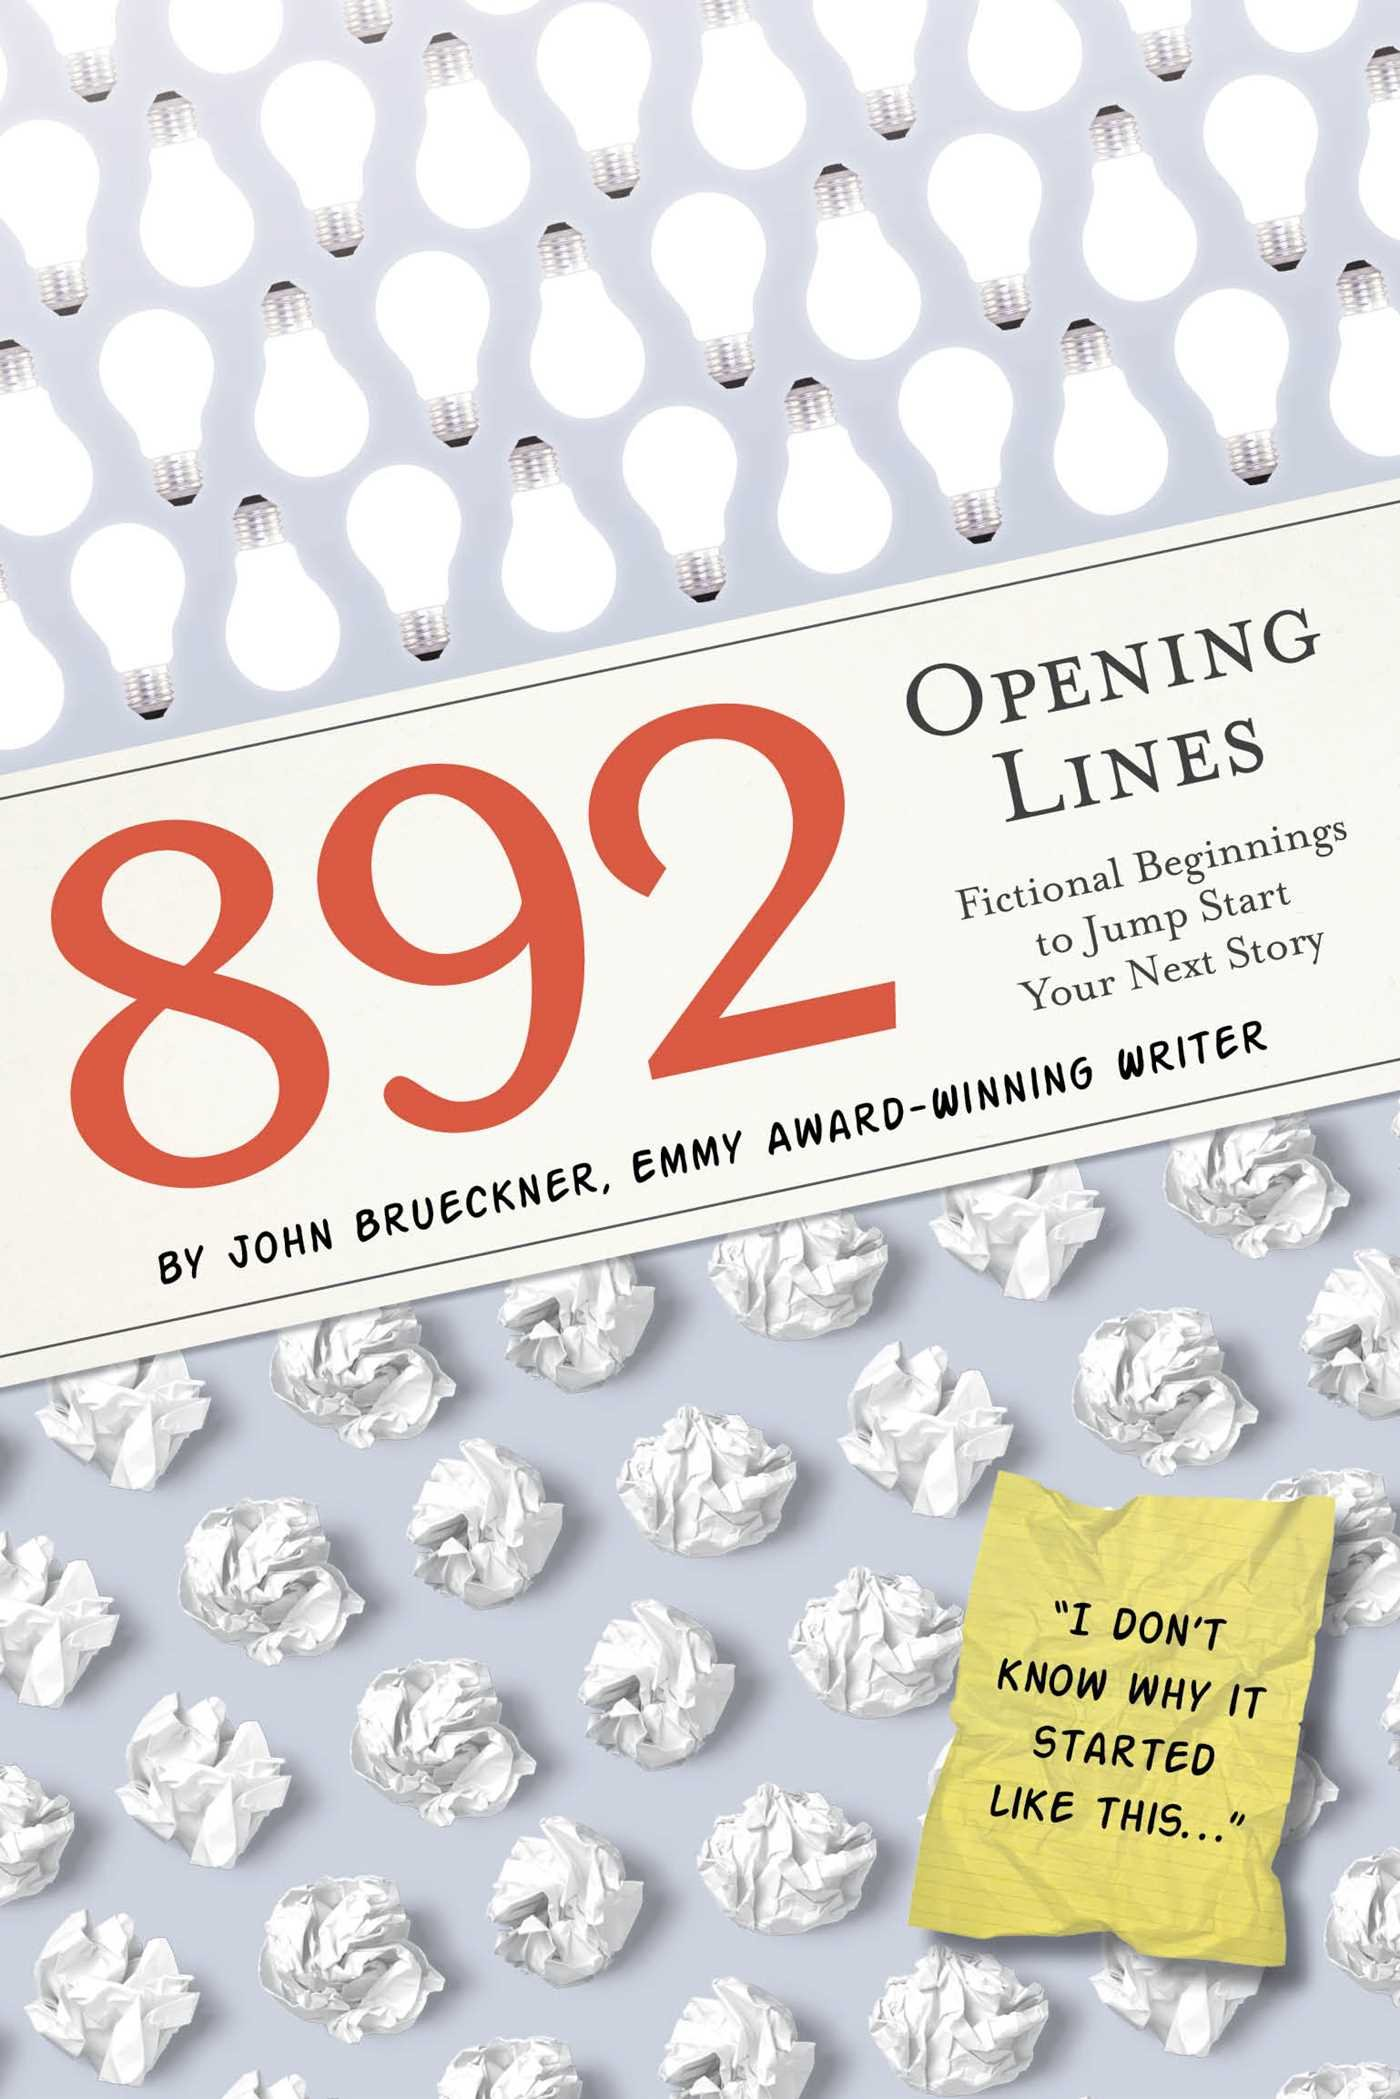 Amazon com: 892 Opening Lines: Everything You Need to Get